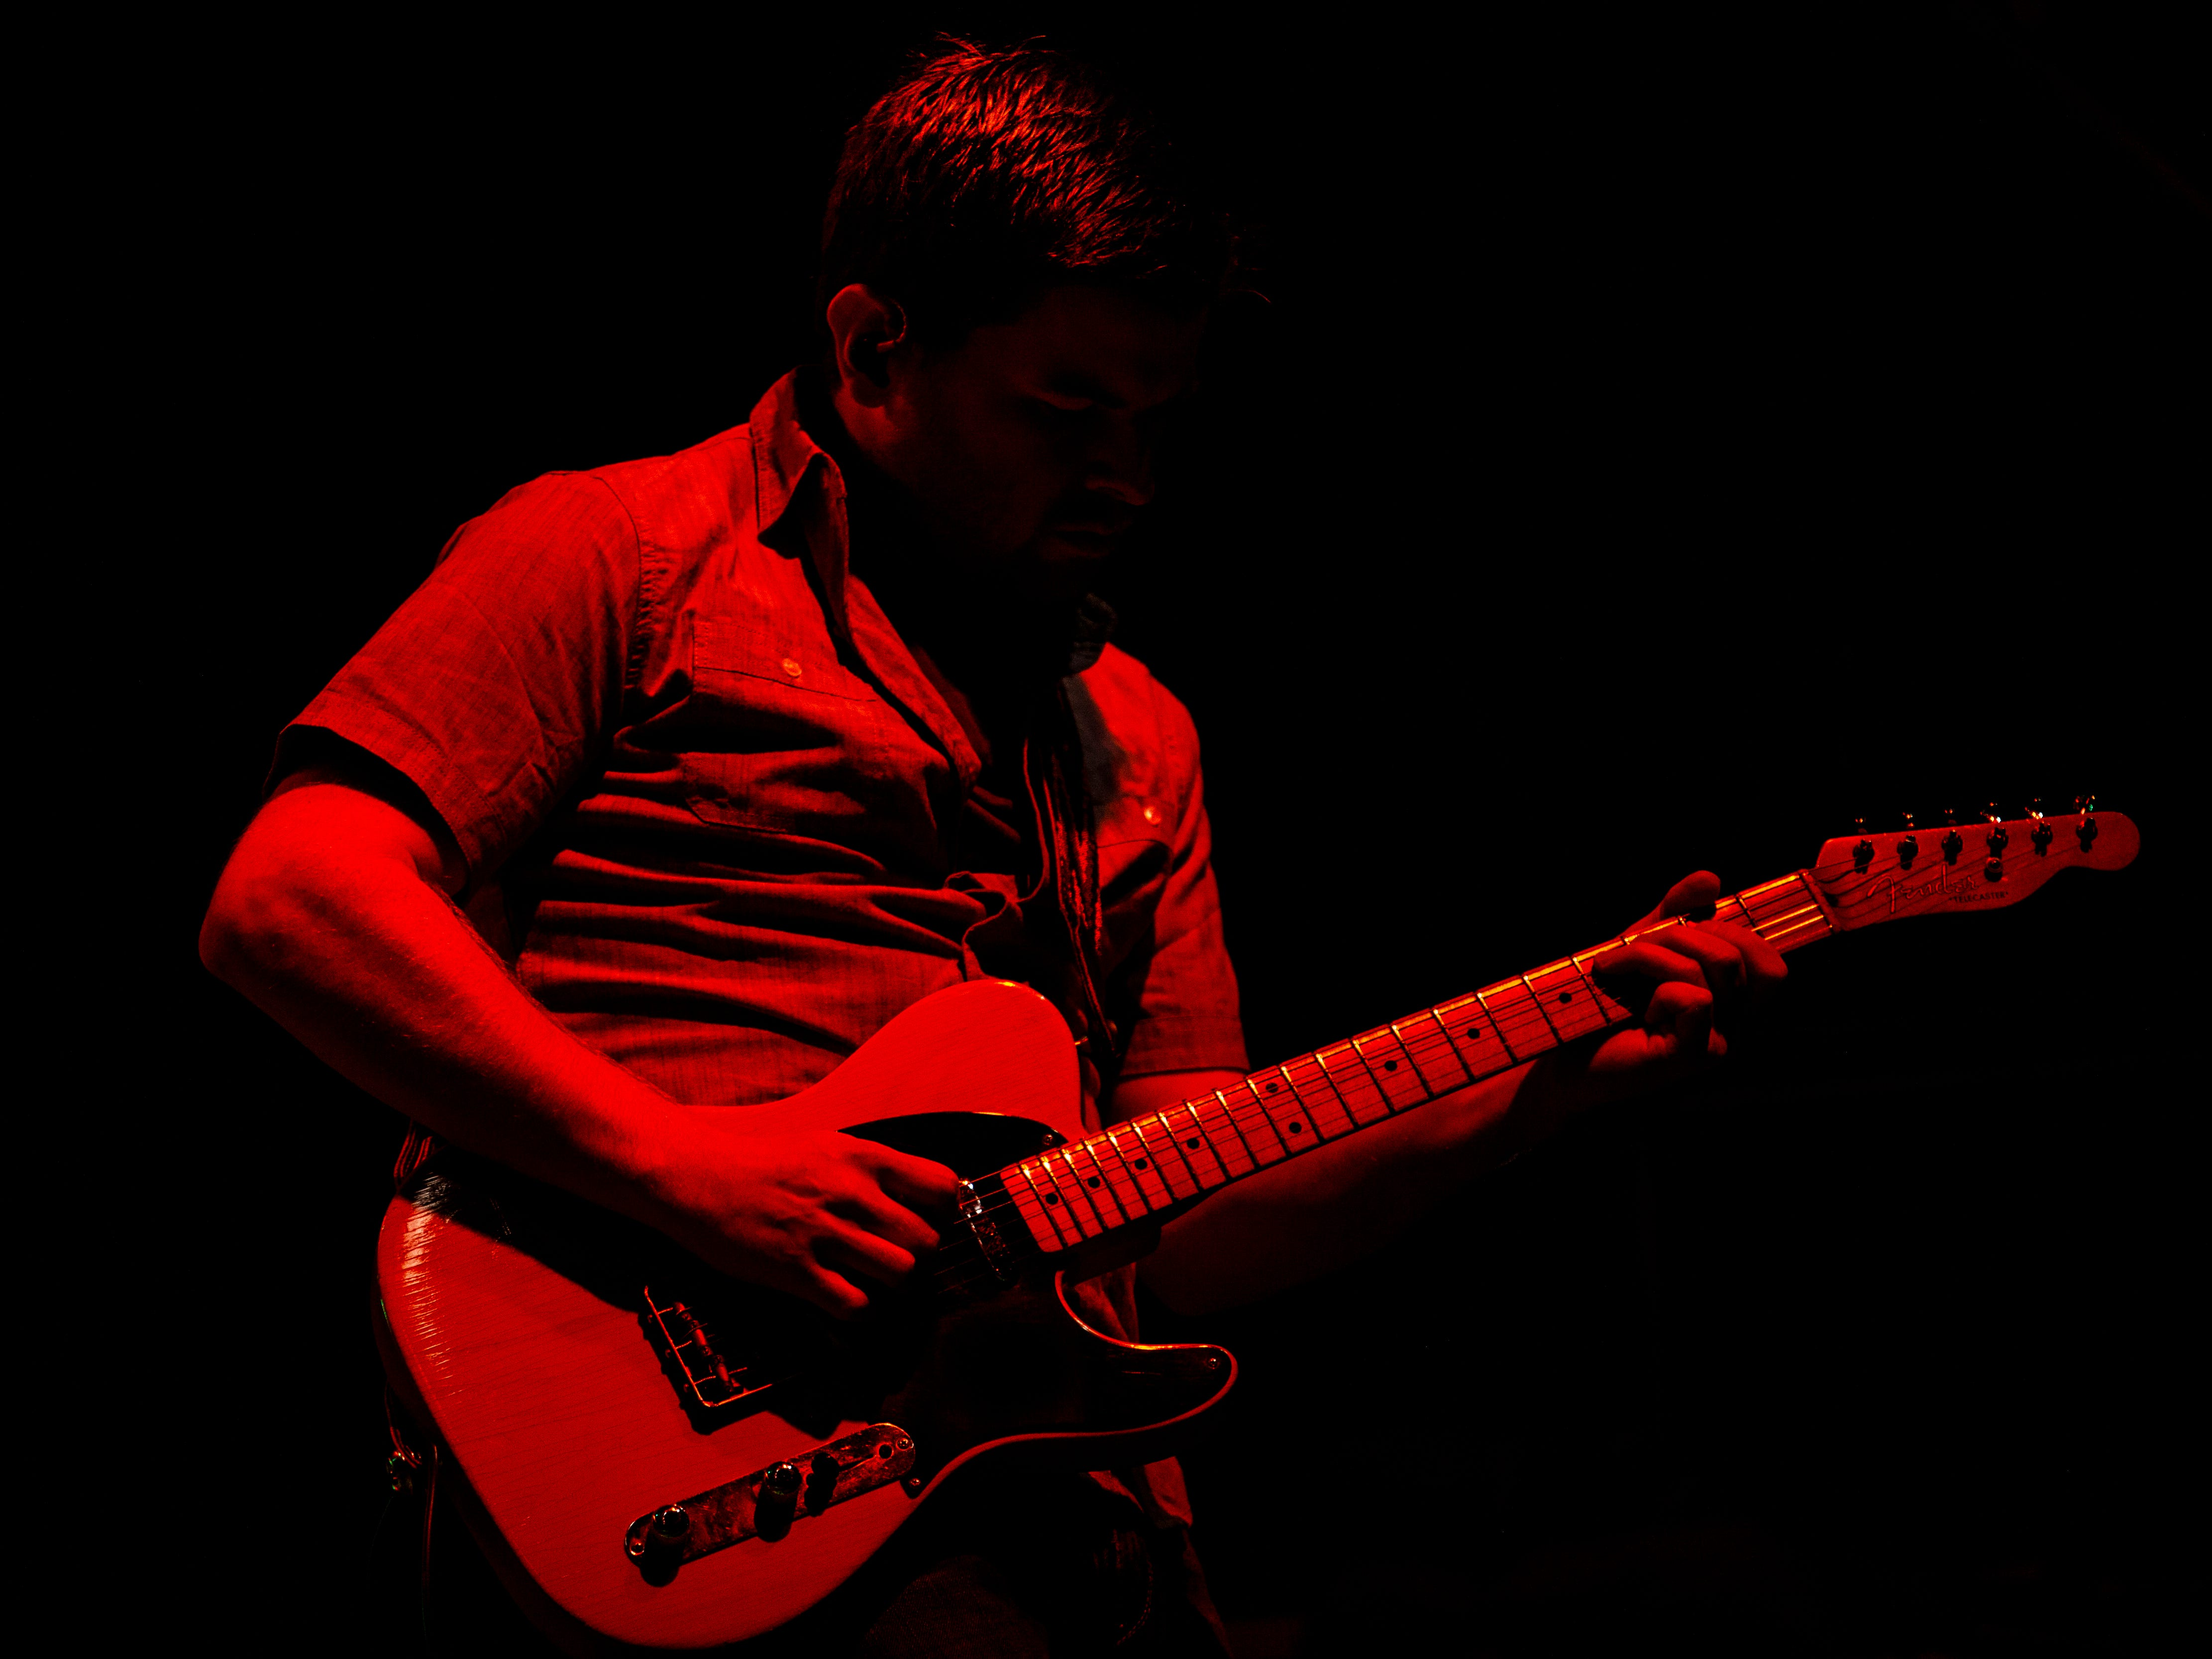 The guitarist for Josh Turner's band was bathed in red light as he performed at the Kentucky State Fair. August 24, 2018